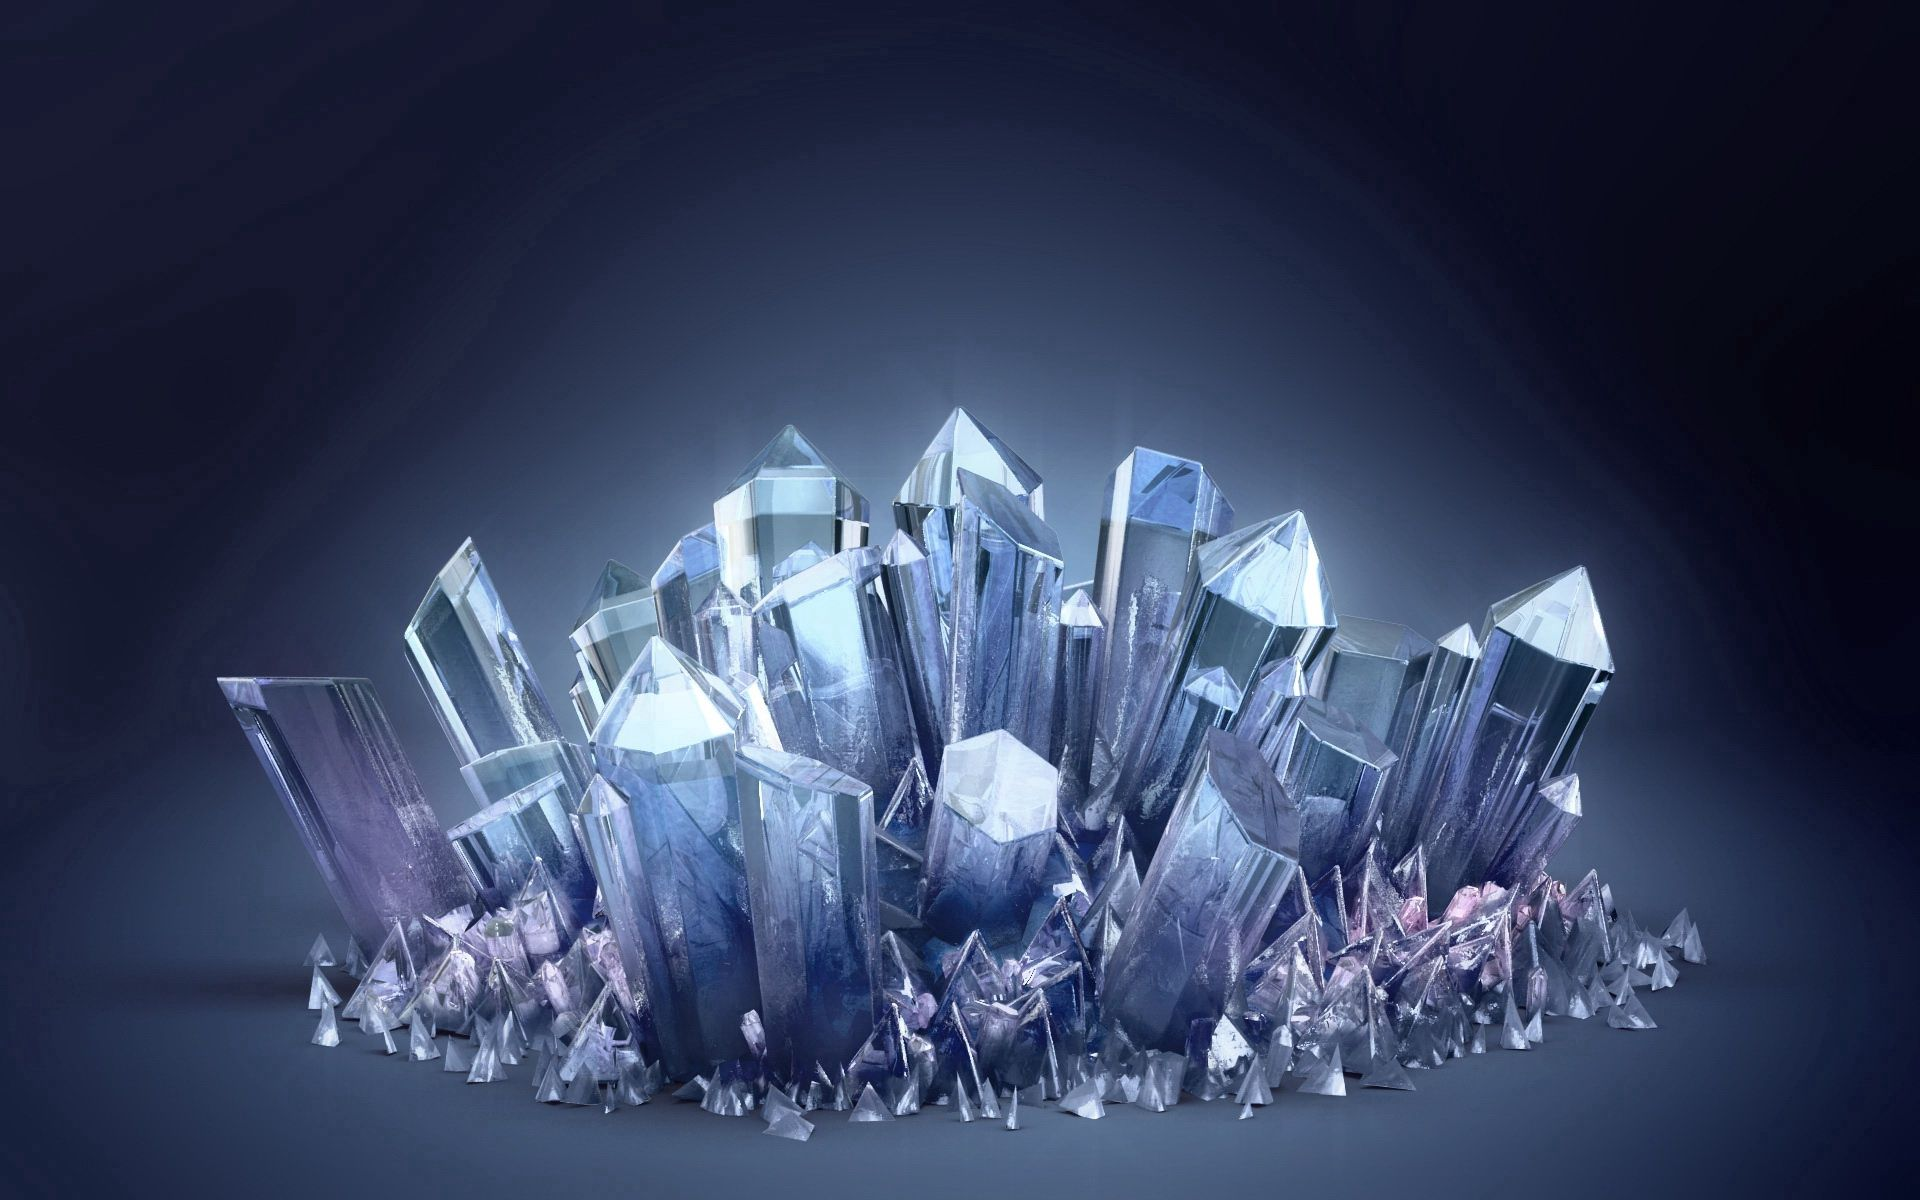 Download free Crystals HD pictures